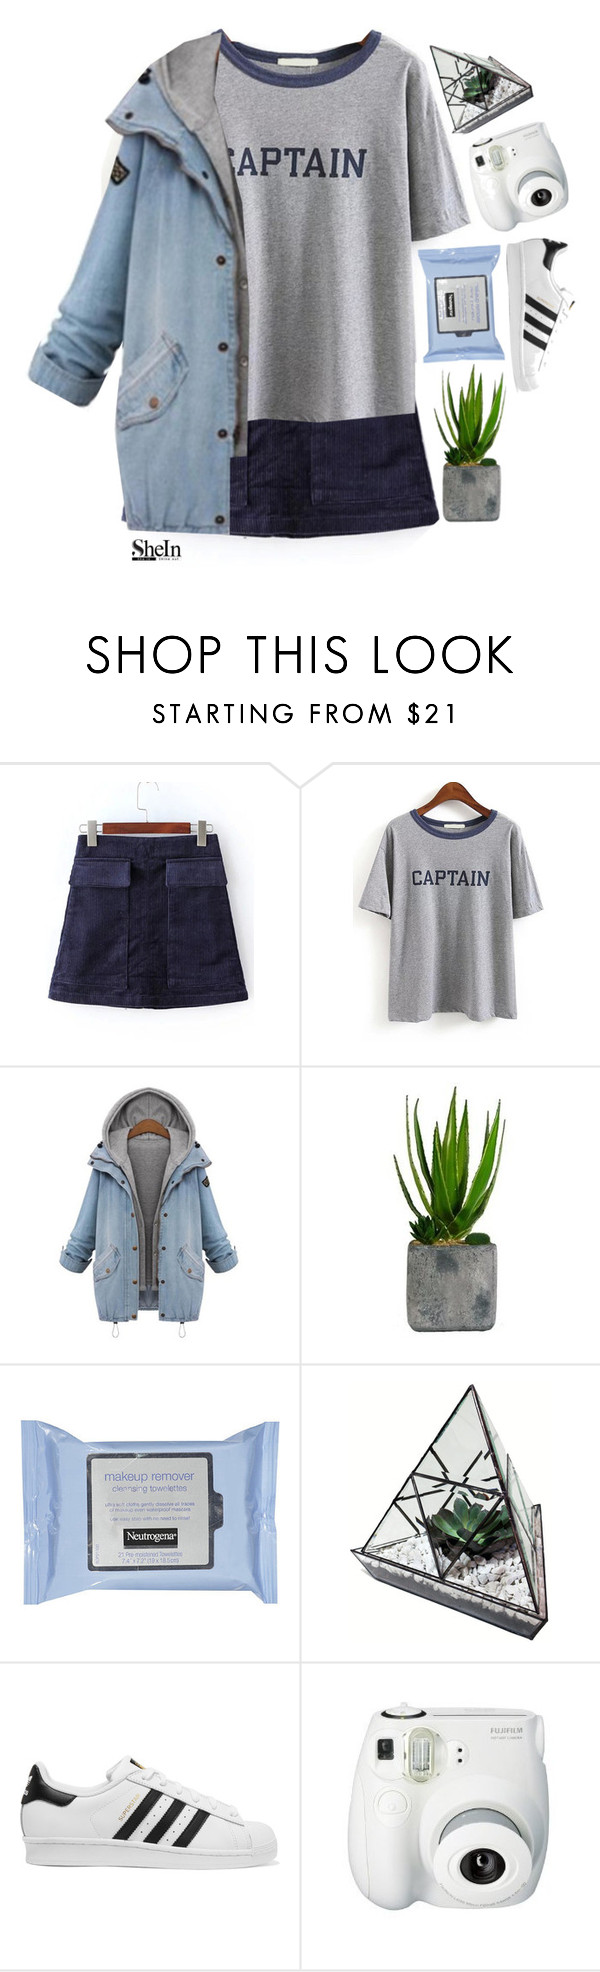 """""""#SheIn"""" by credentovideos ❤ liked on Polyvore featuring Laura Ashley, adidas Originals and Fujifilm"""